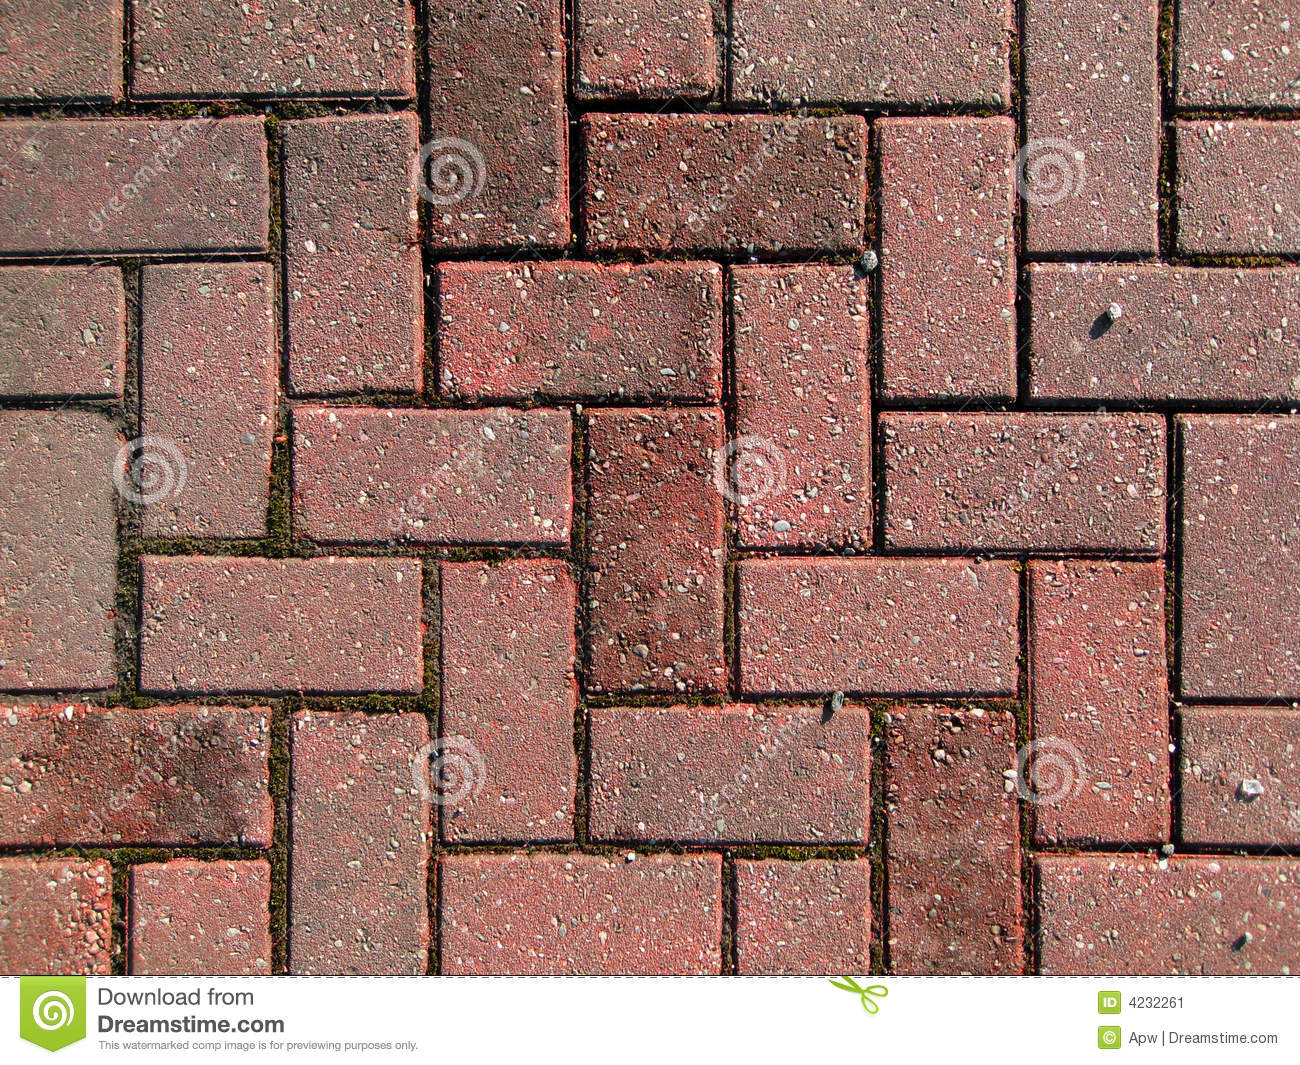 Red Paving Stones : Red brick paving stock image of symmetric aligned